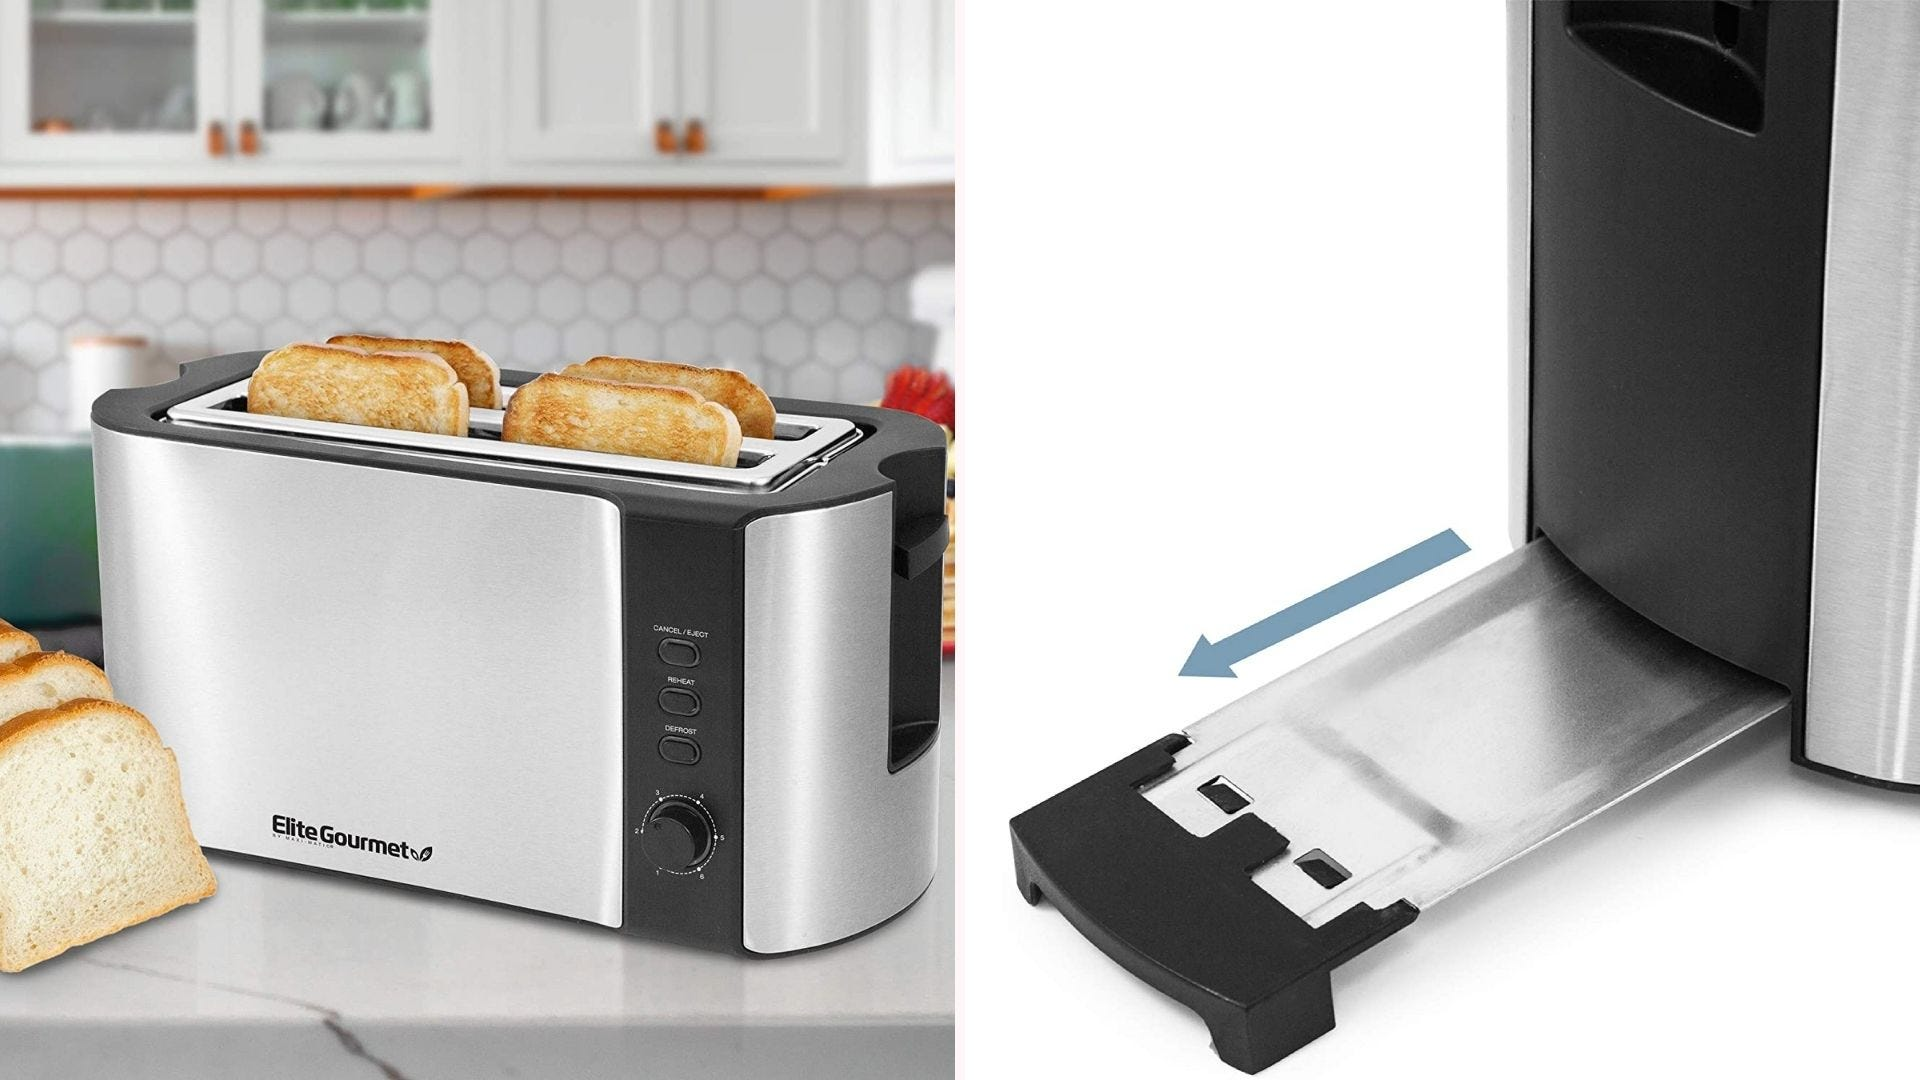 On the left, a silver toaster with black trimming sits on a kitchen counter while four pieces of lightly-browned toast sit inside its two slots. On the right is an close up view of the toaster's slide-out crumb tray.